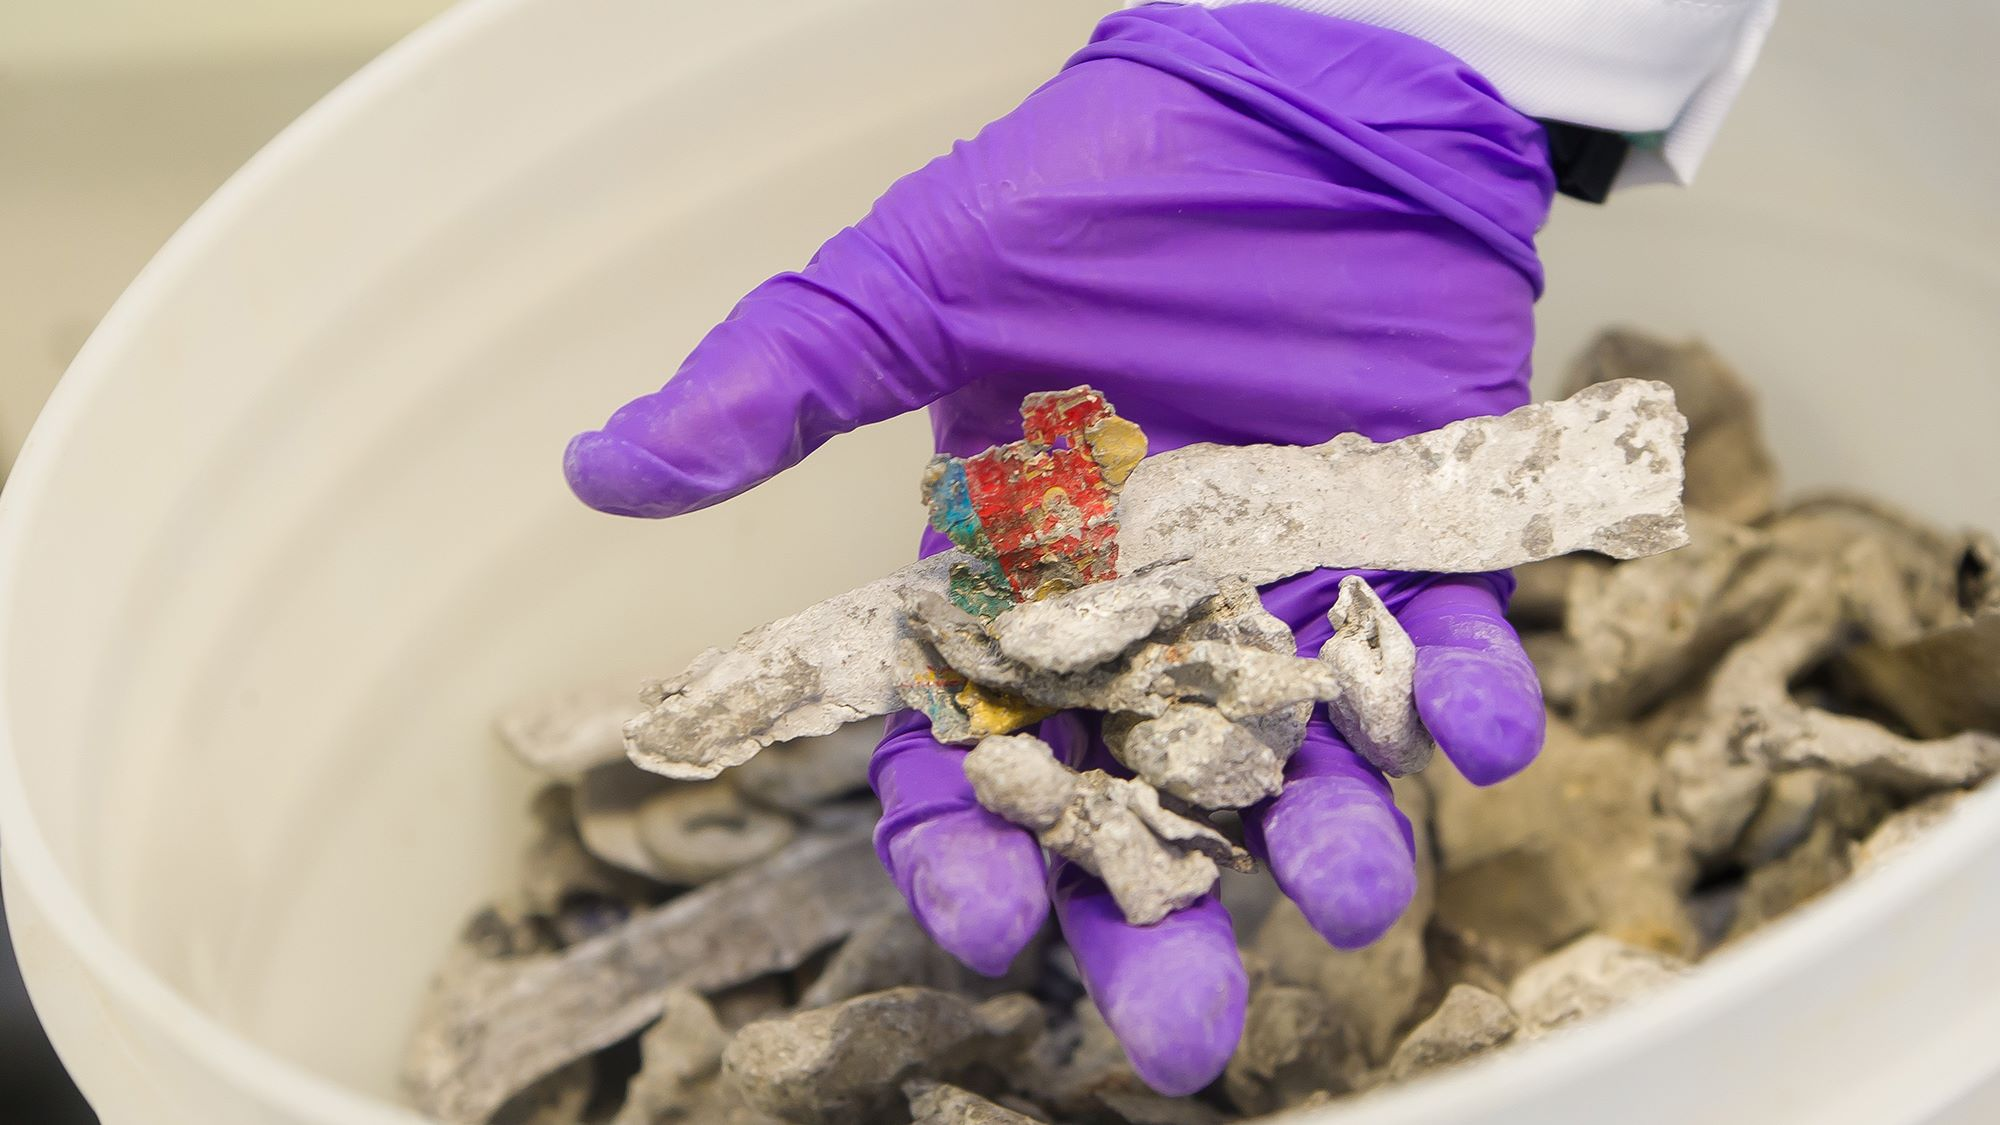 Transforming waste into secondary raw materials